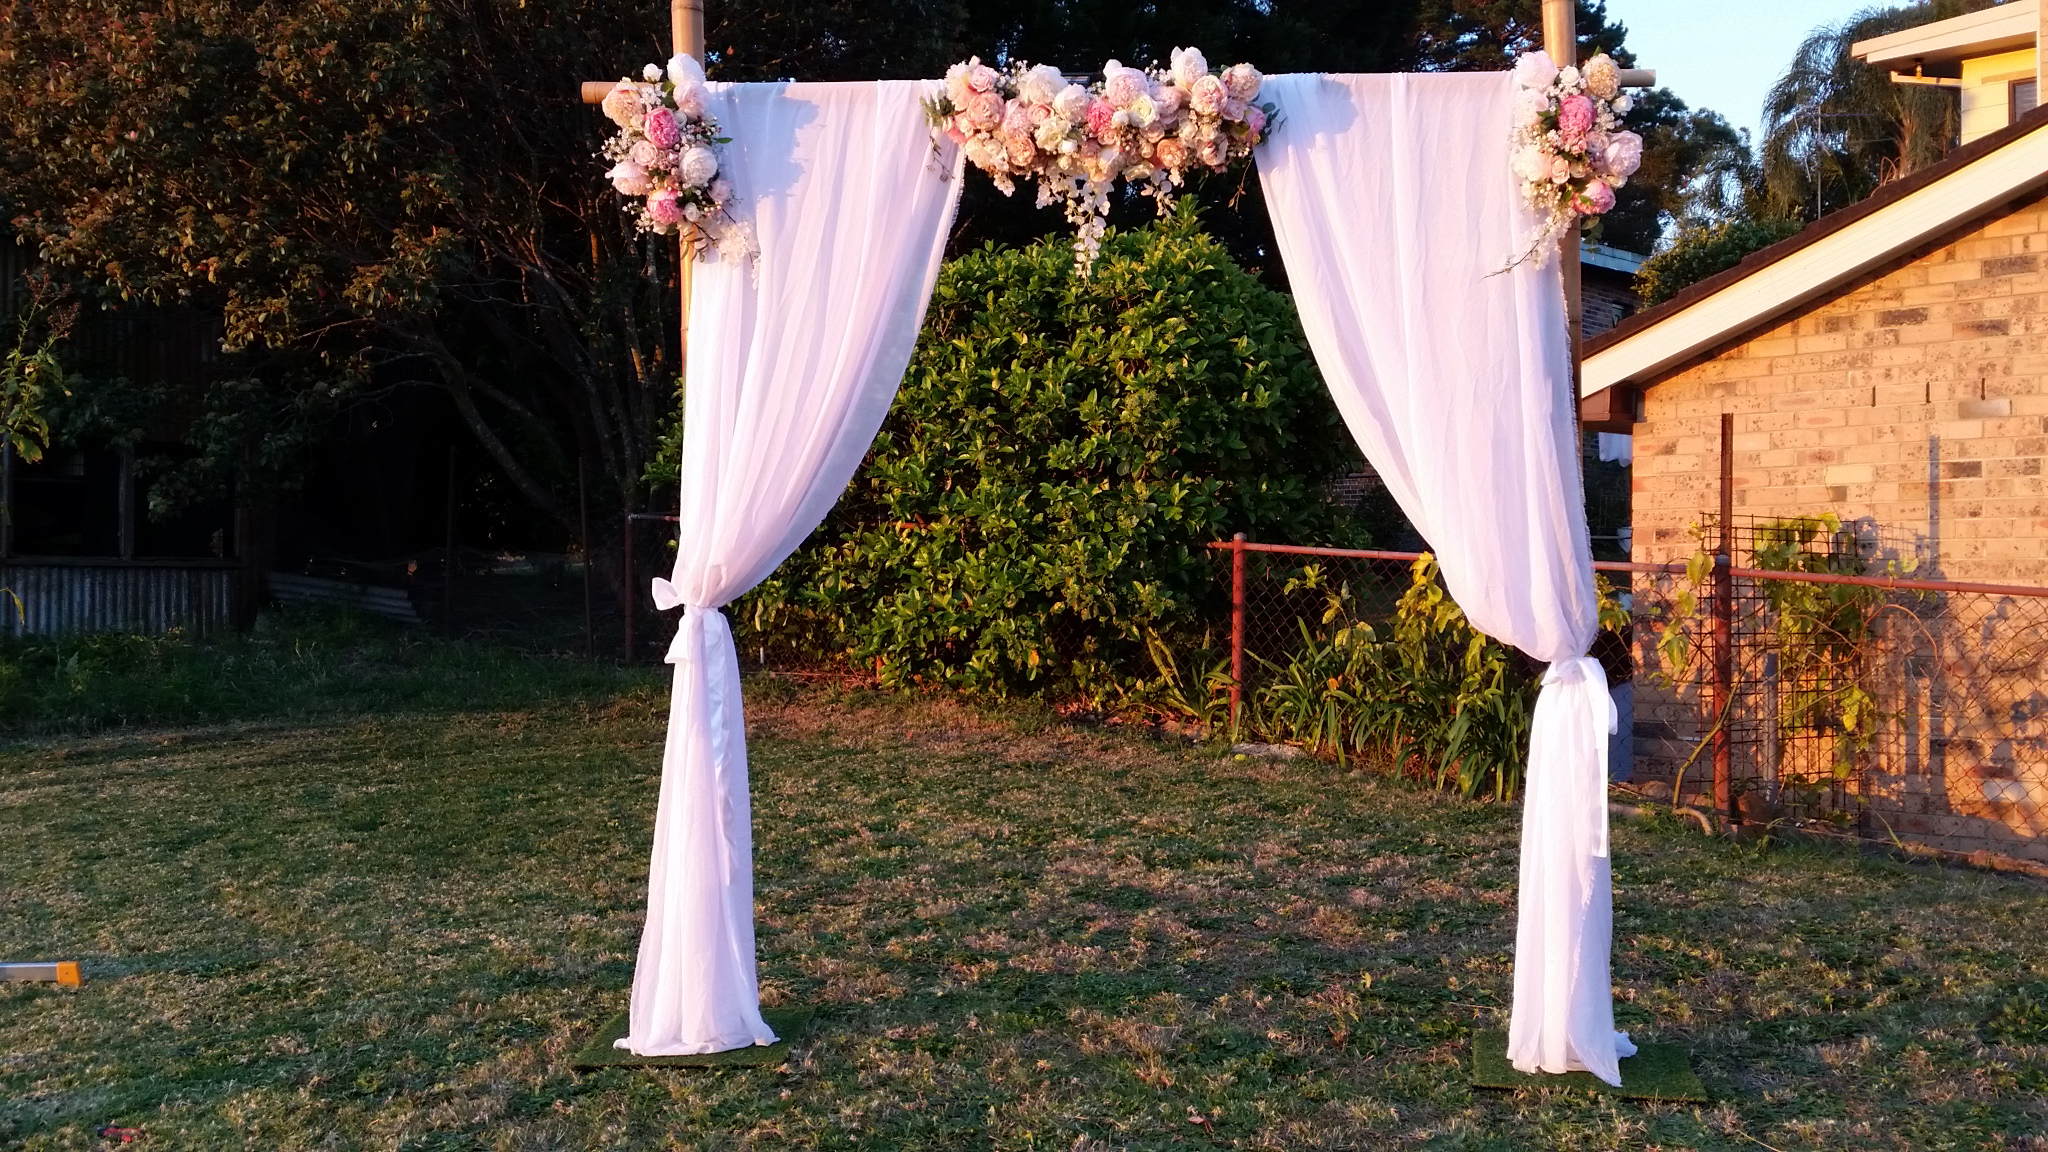 Wedding arch hire wedding arbor bamboo arch bamboo arch or canopy is available in a ceremony package or alone prices start at 300 note minimum spend of 510 for all wedding hire bookings junglespirit Gallery